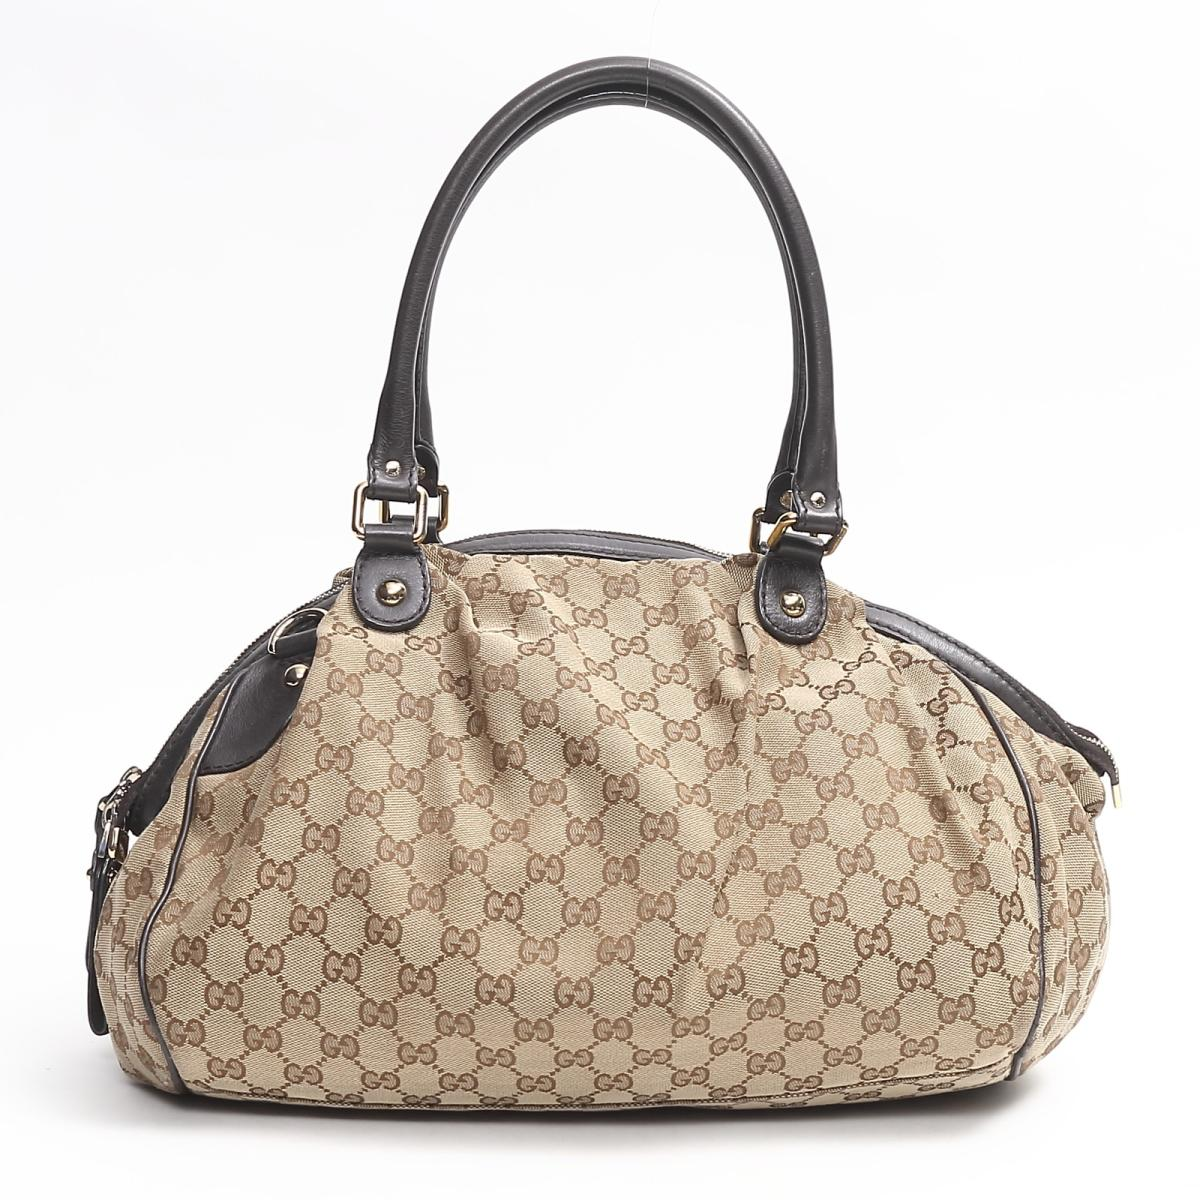 55fdc8c9cb91 ... Gucci Sioux key Boston shoulder bag bag lady GG canvas x leather brown  (362724) ...